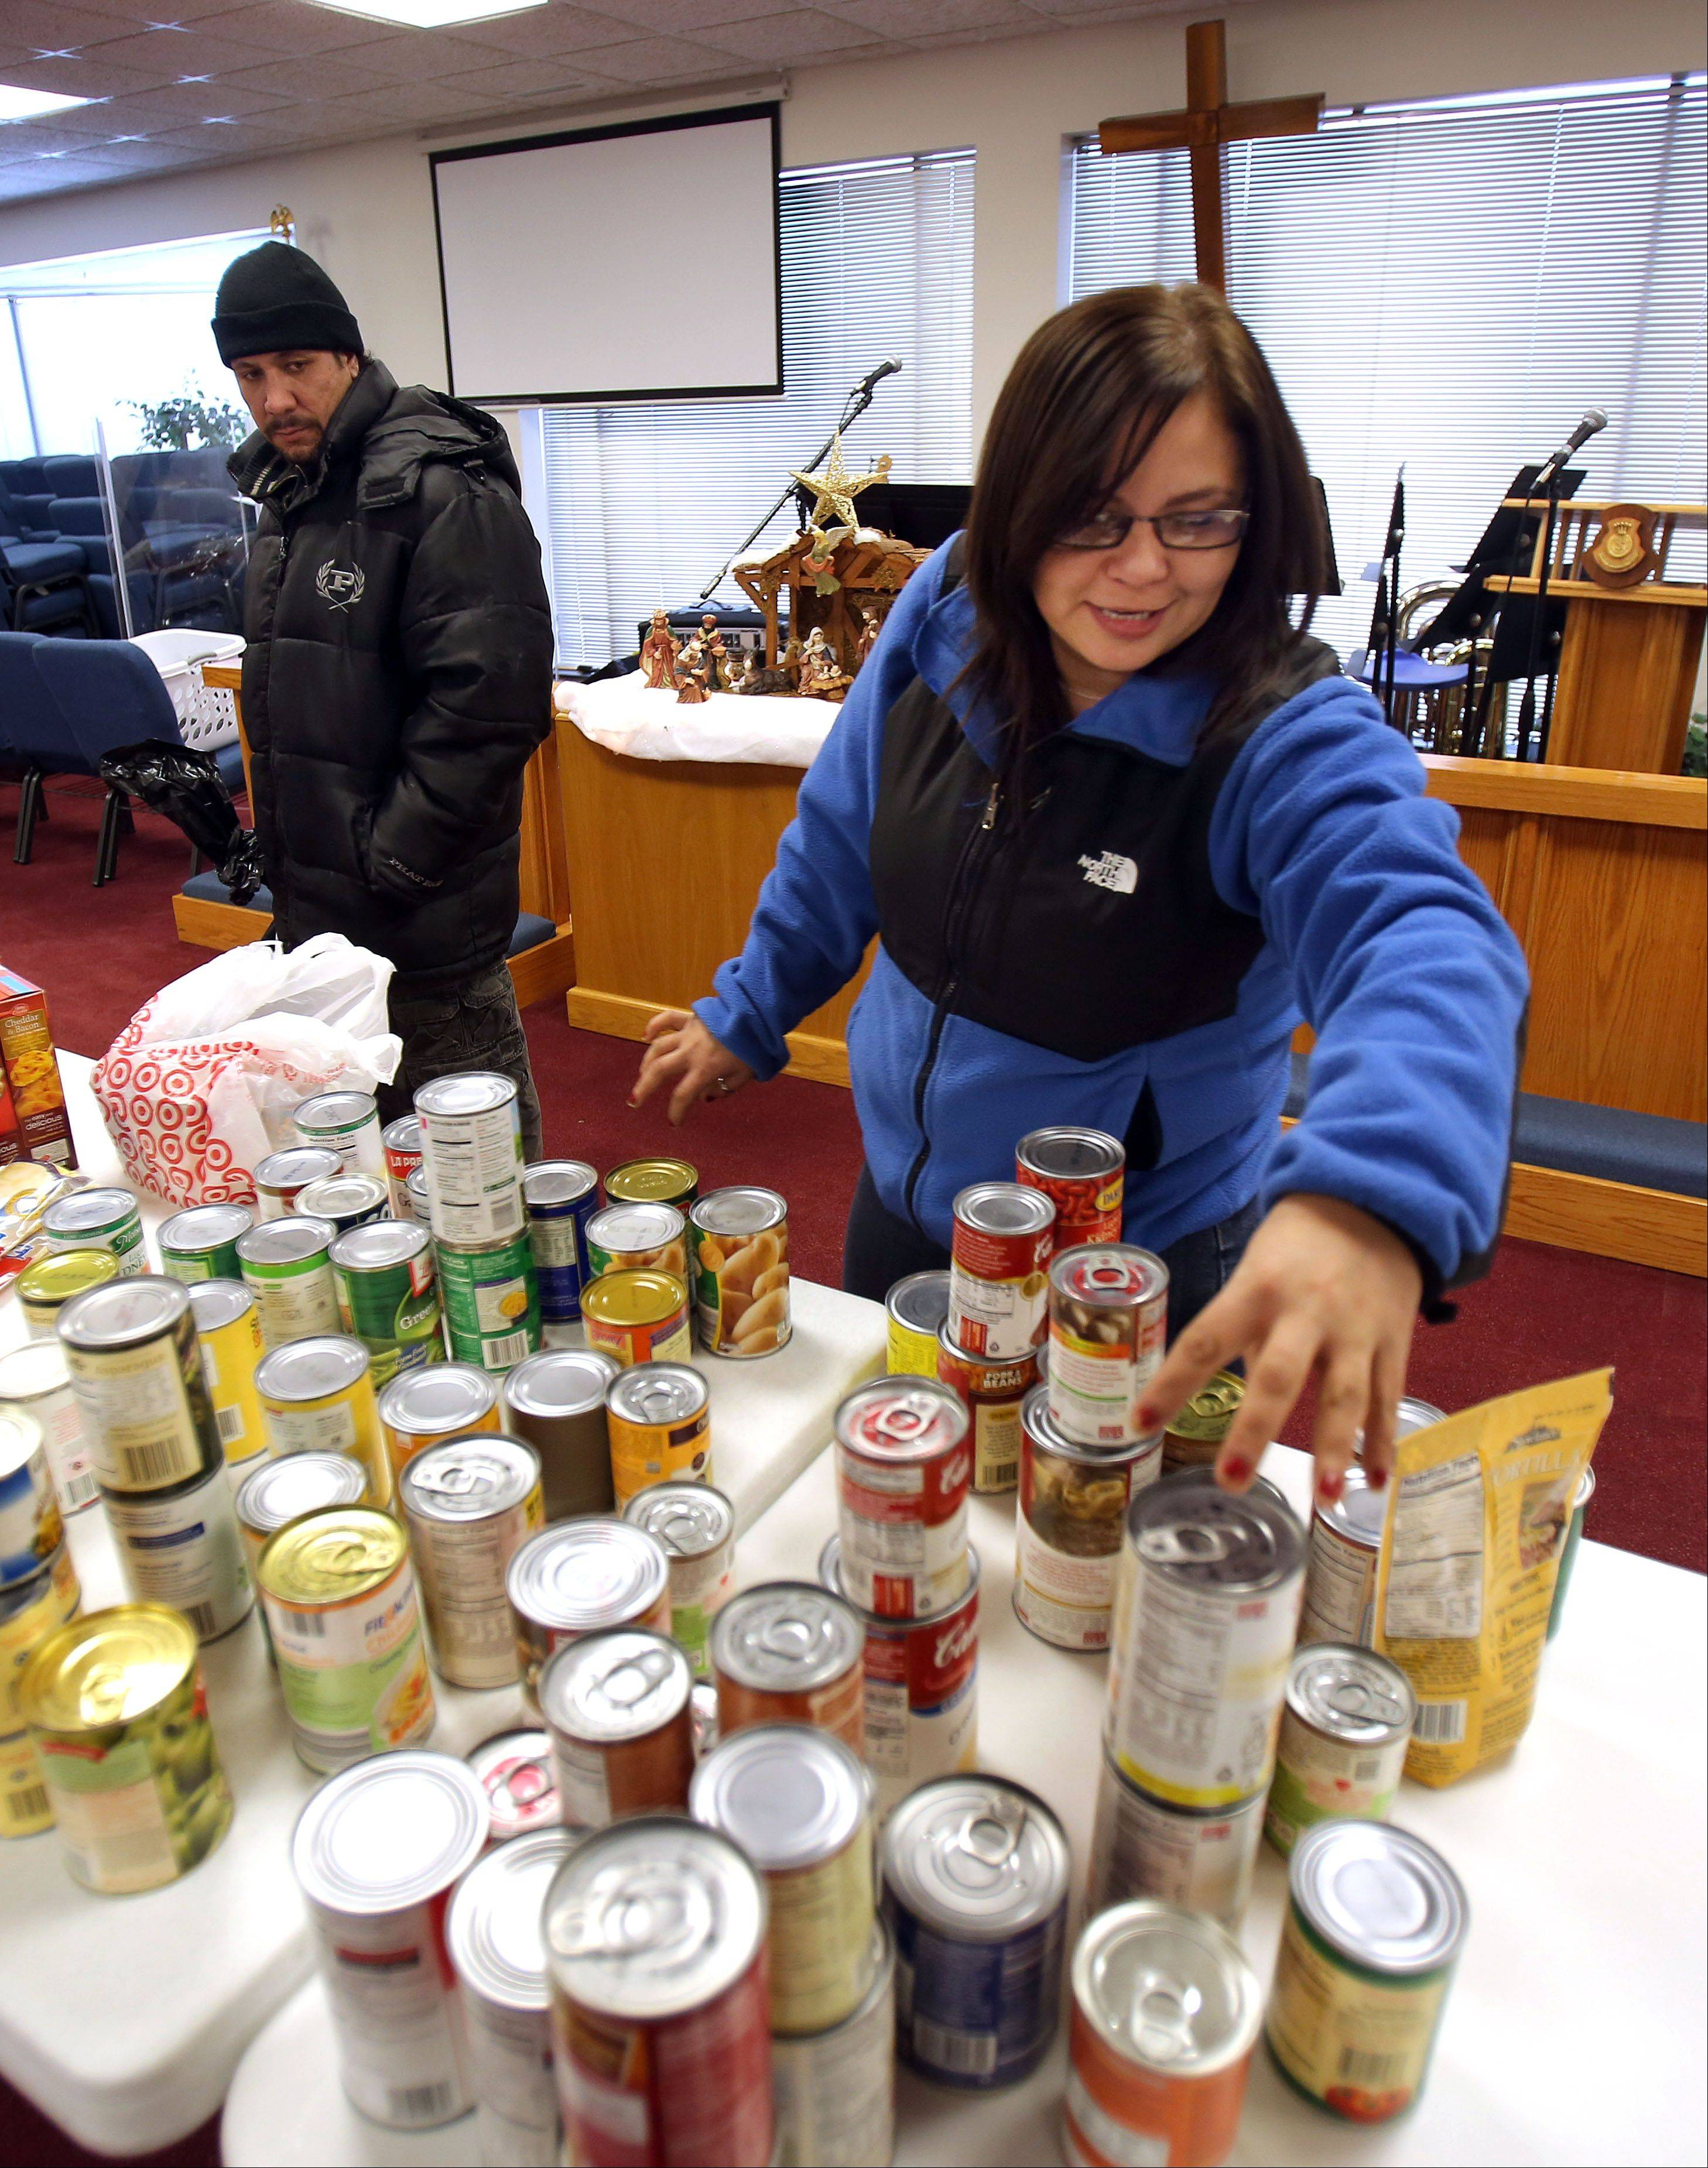 Waukegan residents Beatrice Ocegueda, right, and her husband, Cesar, sort through nonperishable food items during the Angel Tree program on Thursday at the Salvation Army Waukegan Corps Community Center. The food was donated by the Gurnee Police Department.